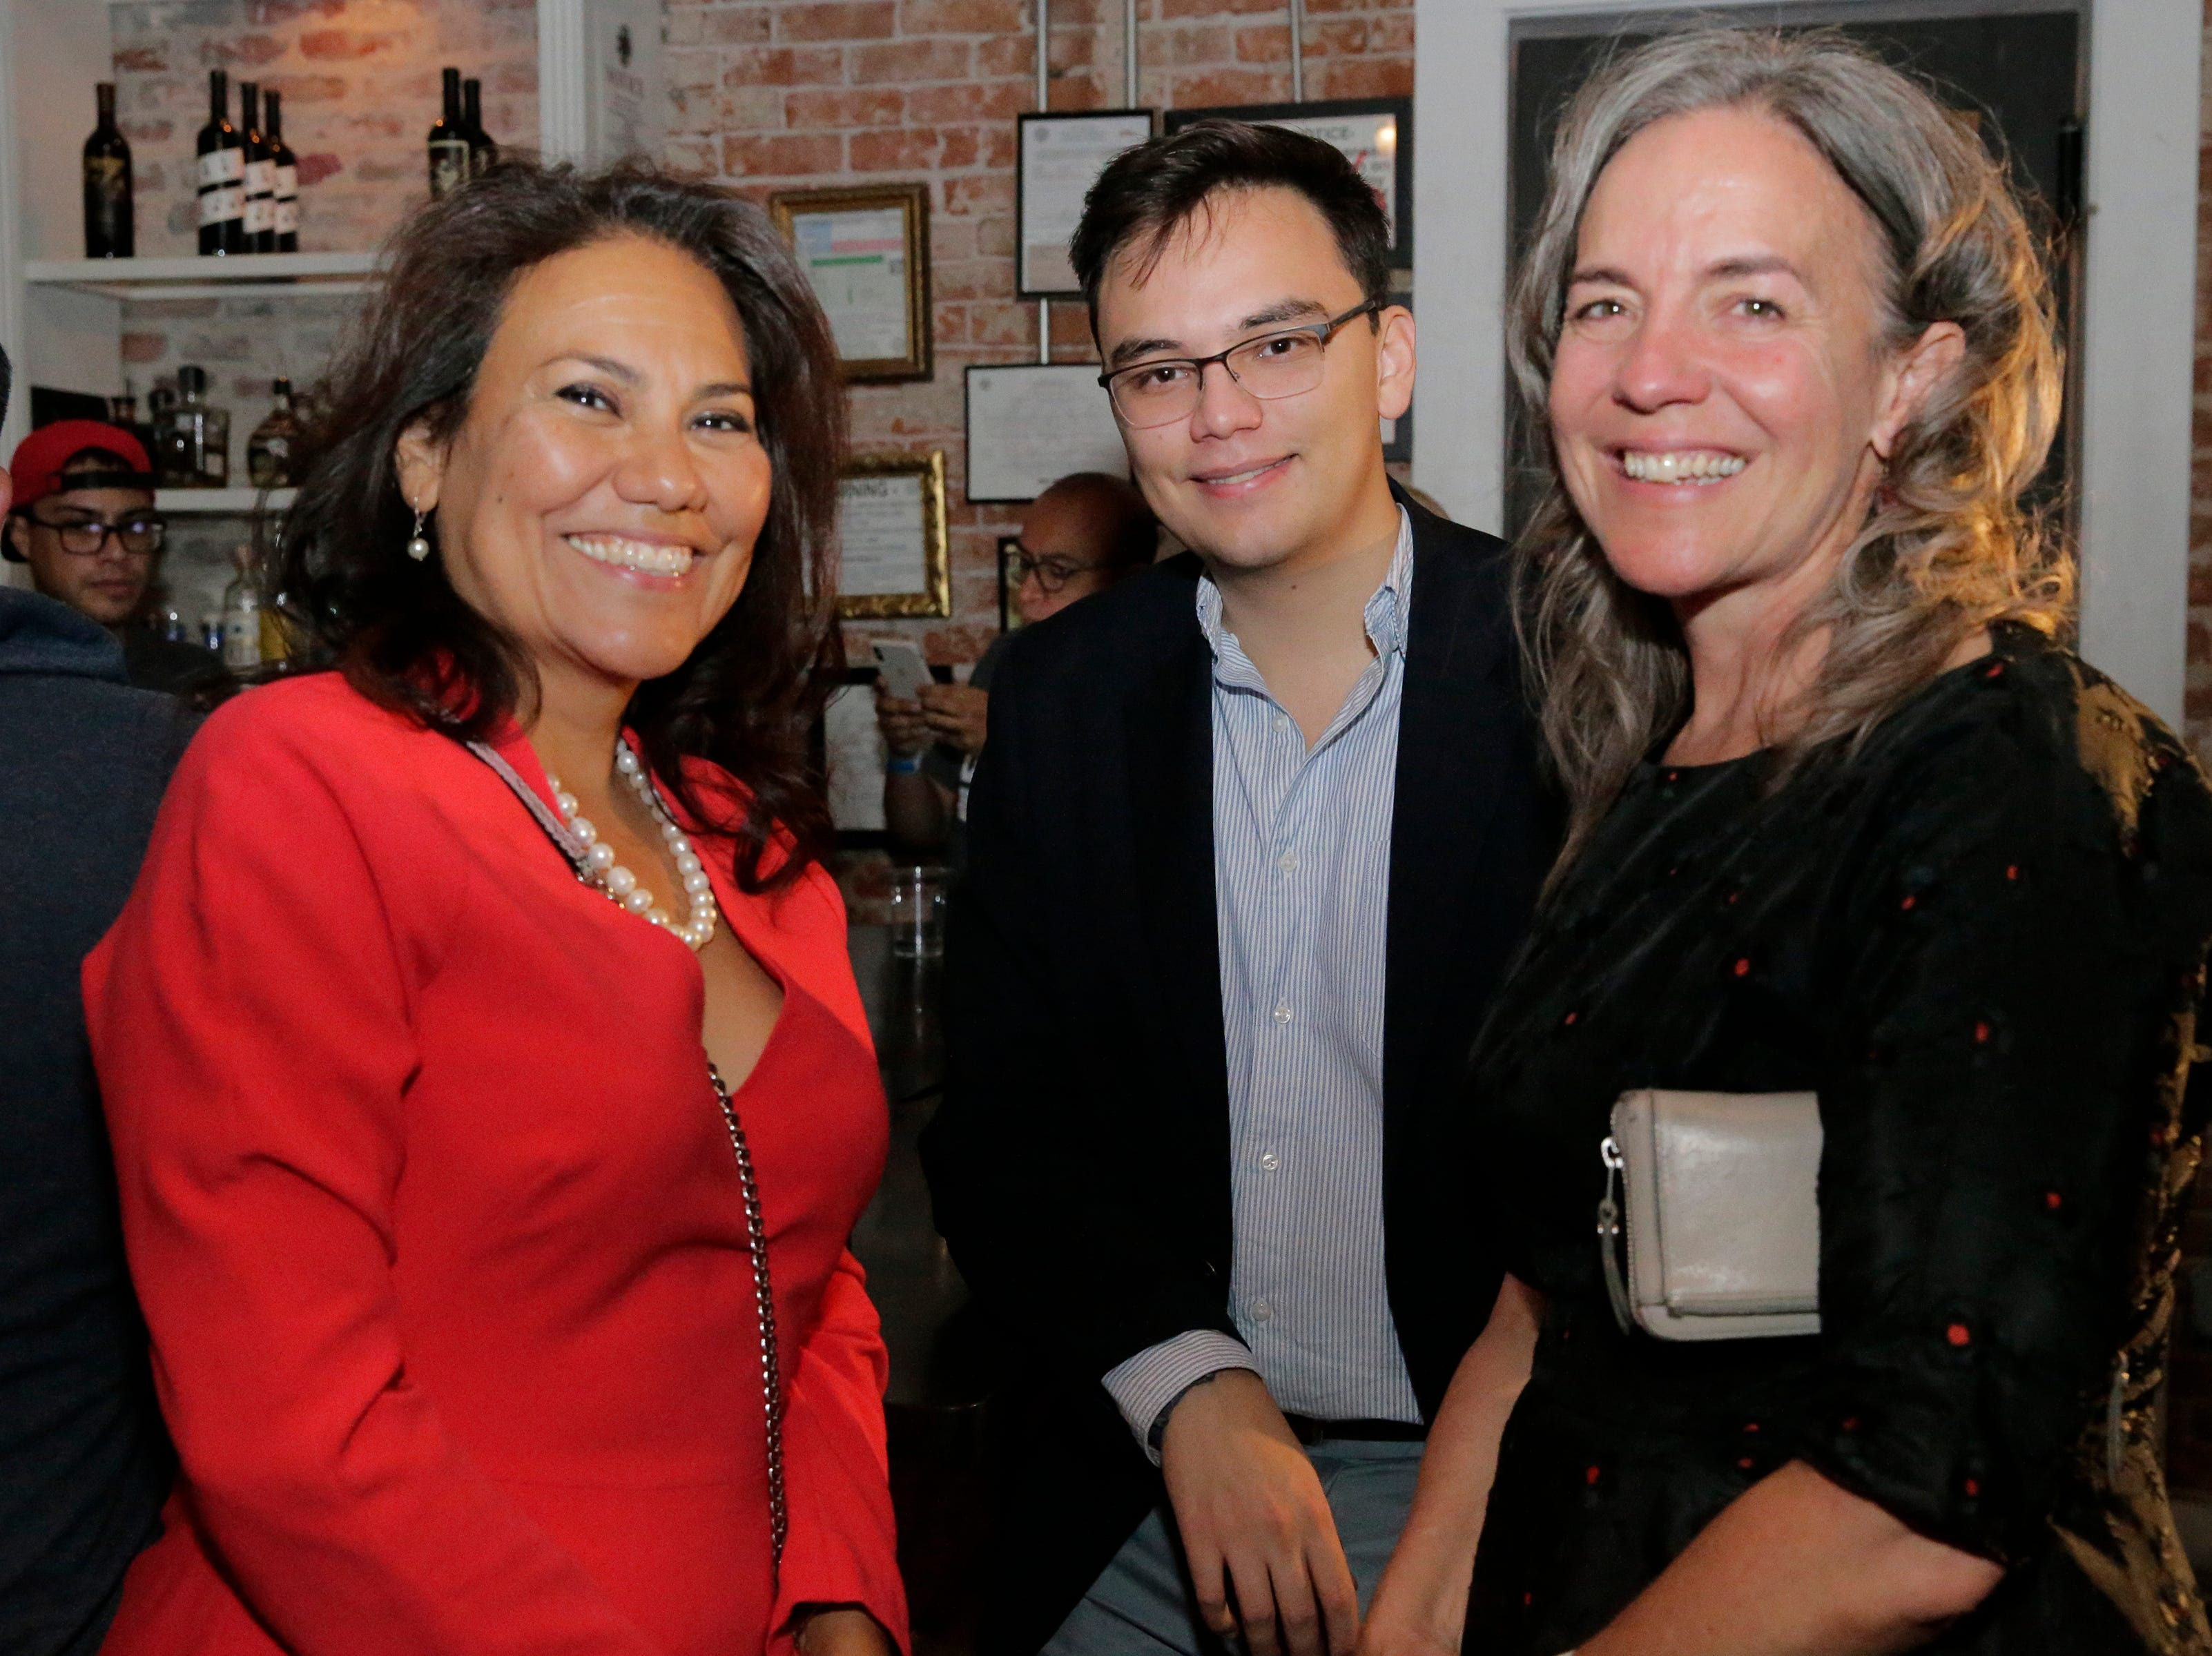 U.S. Rep.-elect Veronica Escobar celebrates her election victory with her son and campaign aide Susie Byrd at Later Later in Downtown El Paso. She will be one of the first Latinas from Texas in Congress.